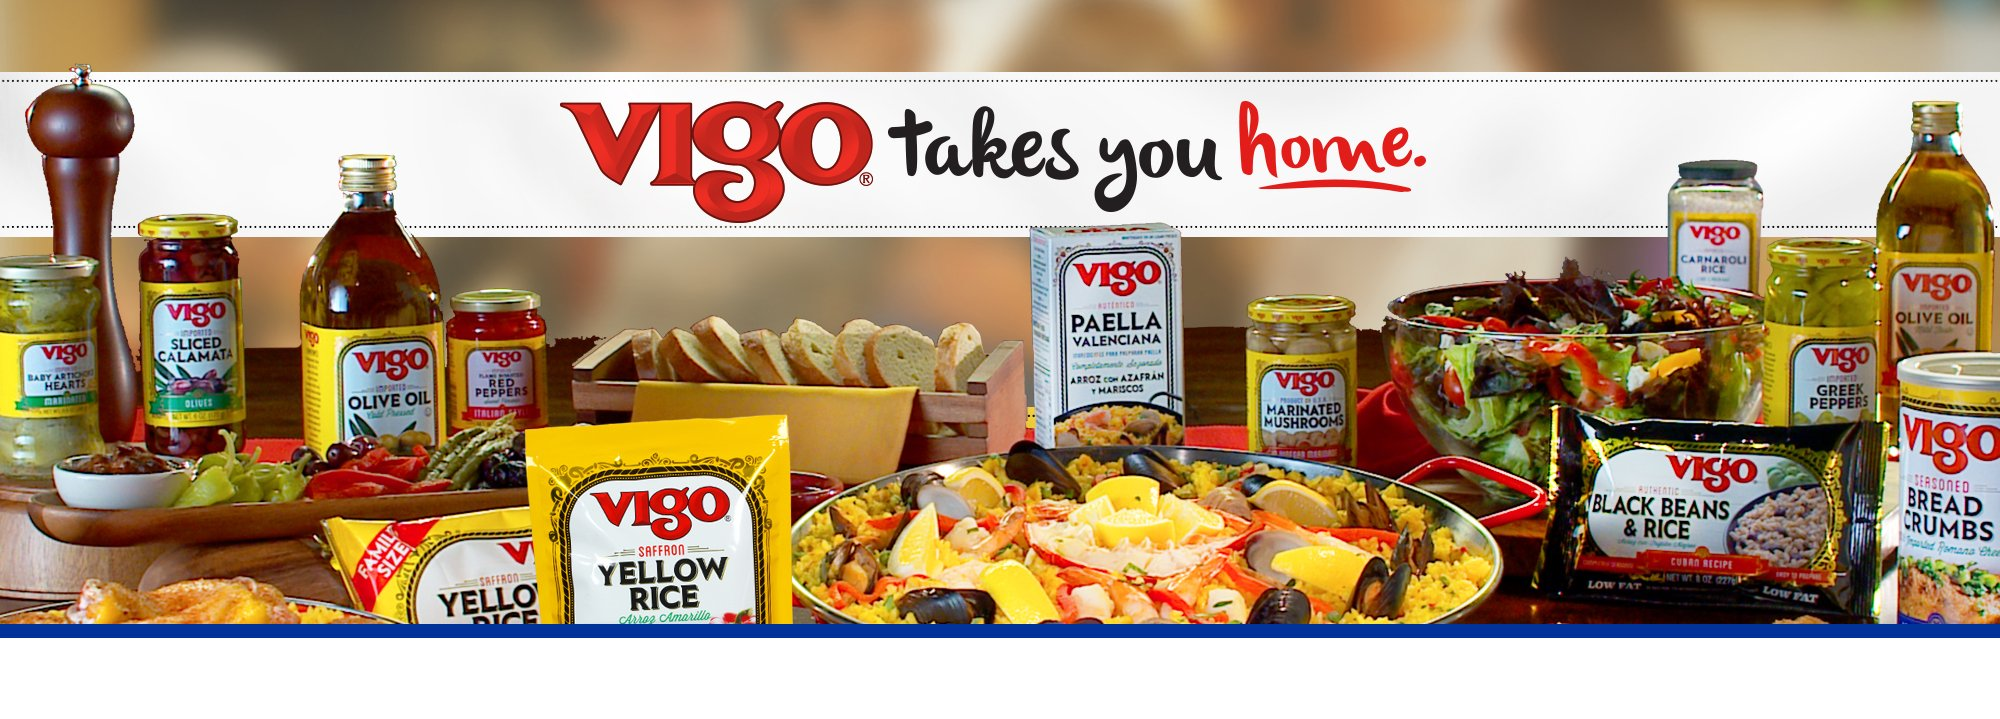 Let Vigo take you home with delicious recipes